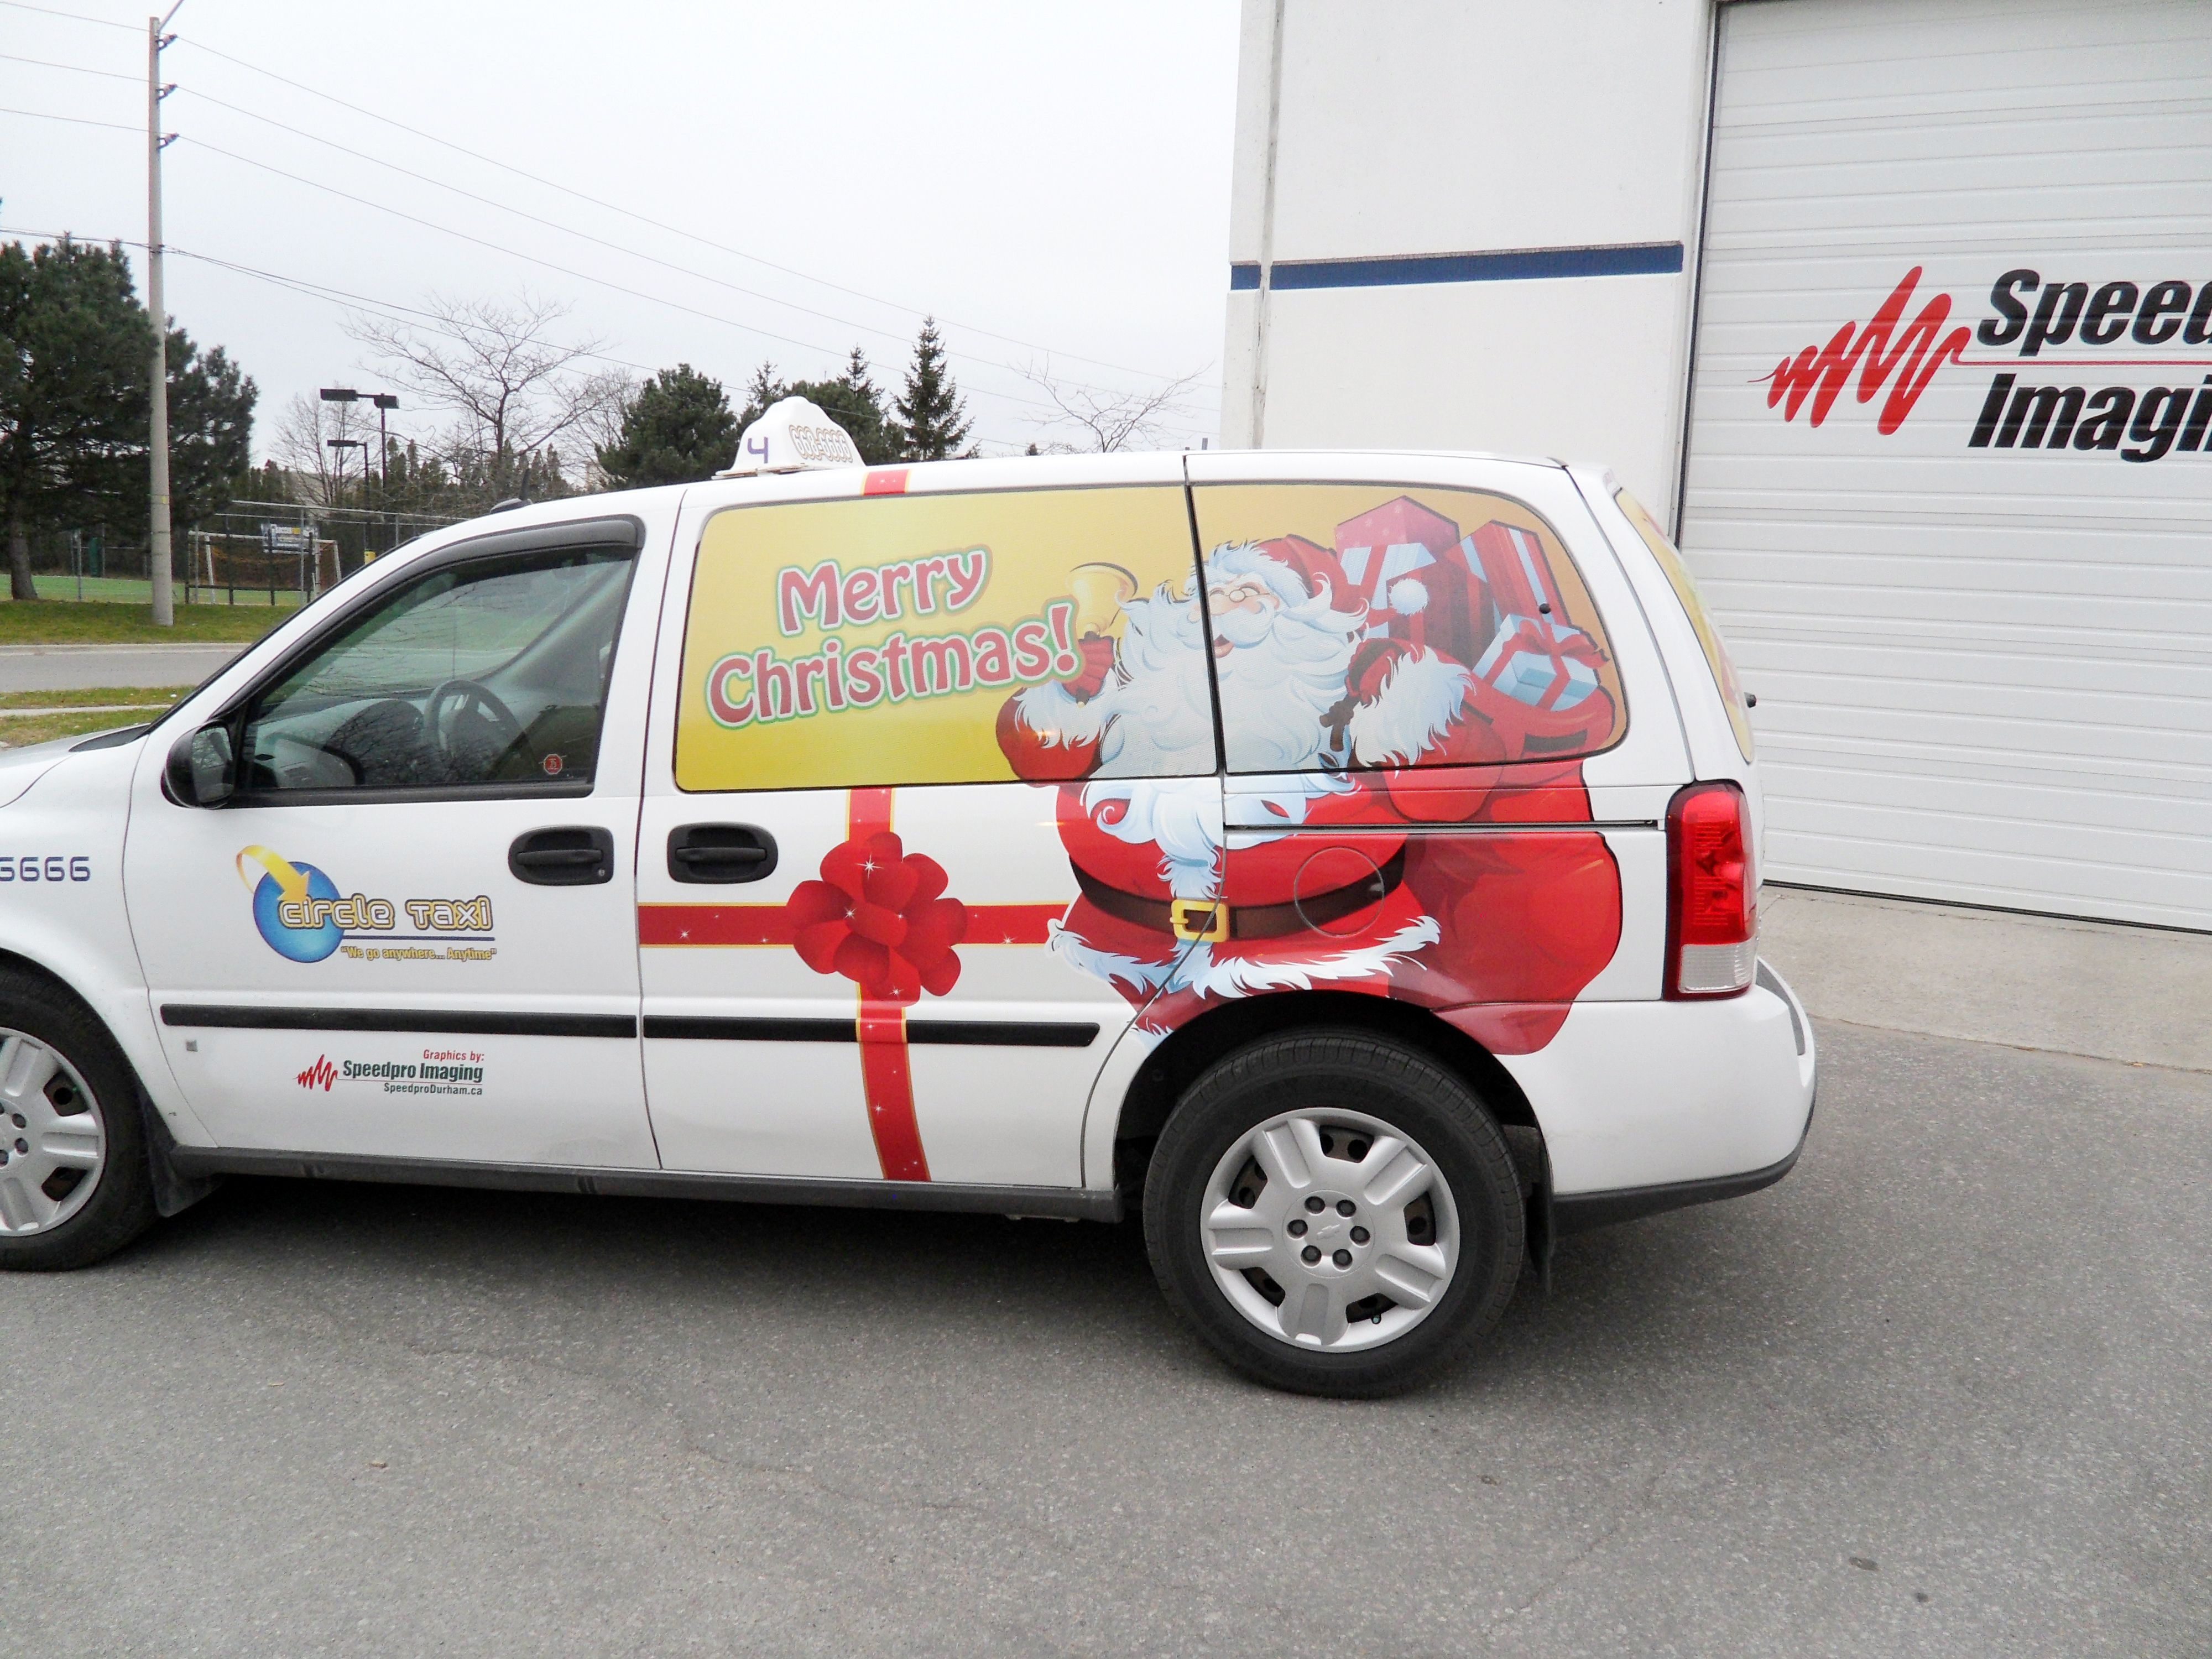 Awesome van wrap done by the speedpro imaging oshawa durham location for circle taxi vehicle